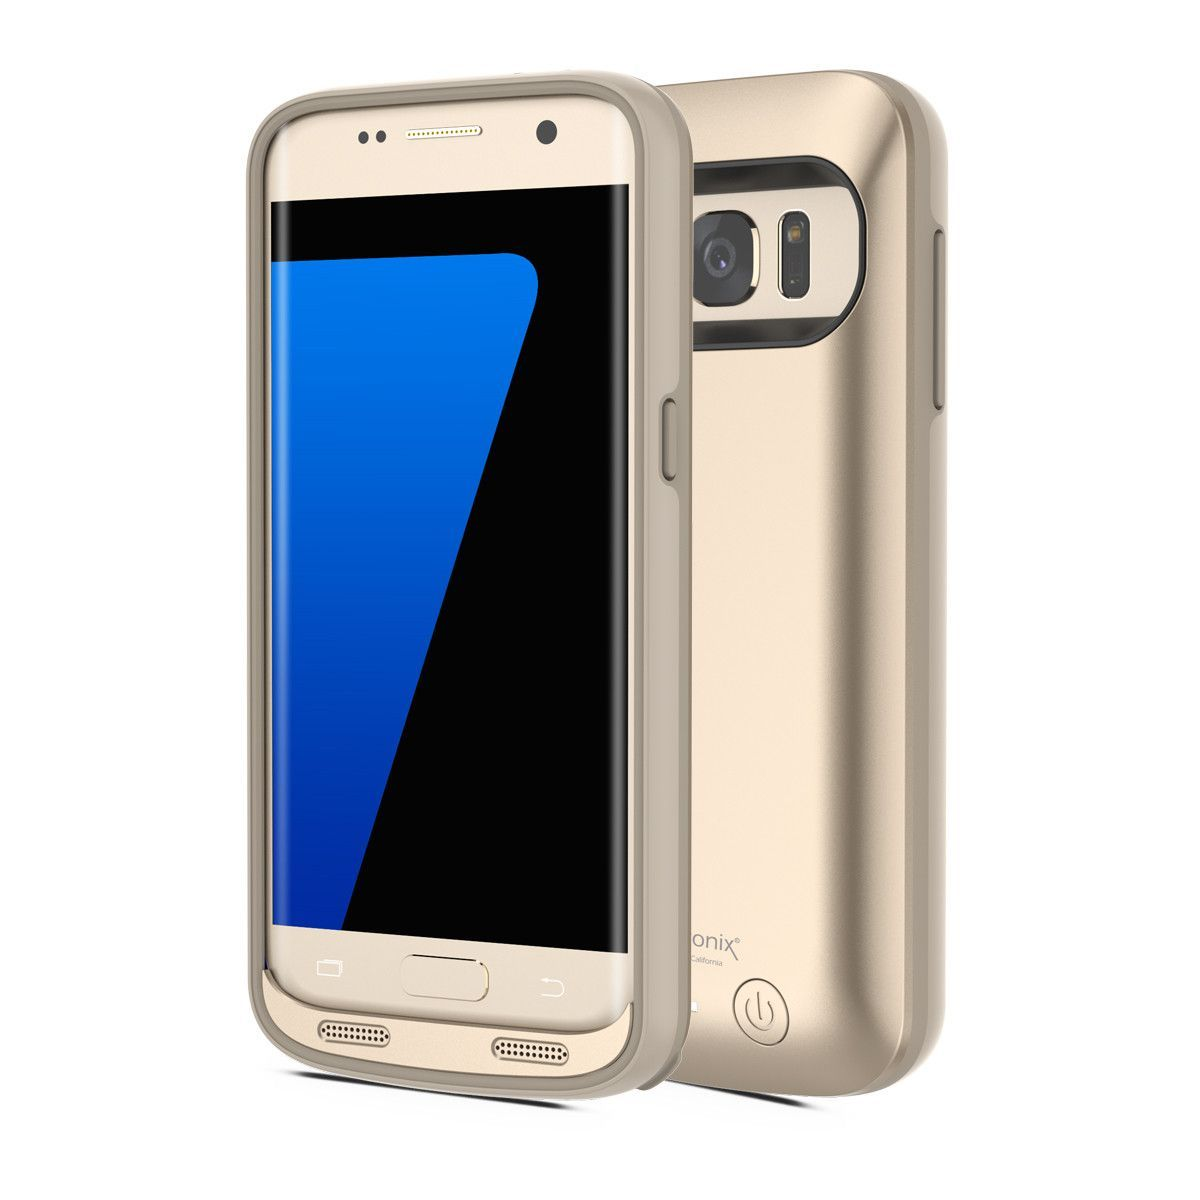 huge selection of d0ab9 bcab9 4500mAh Battery Case for Samsung Galaxy S7 (BX420) | Products ...